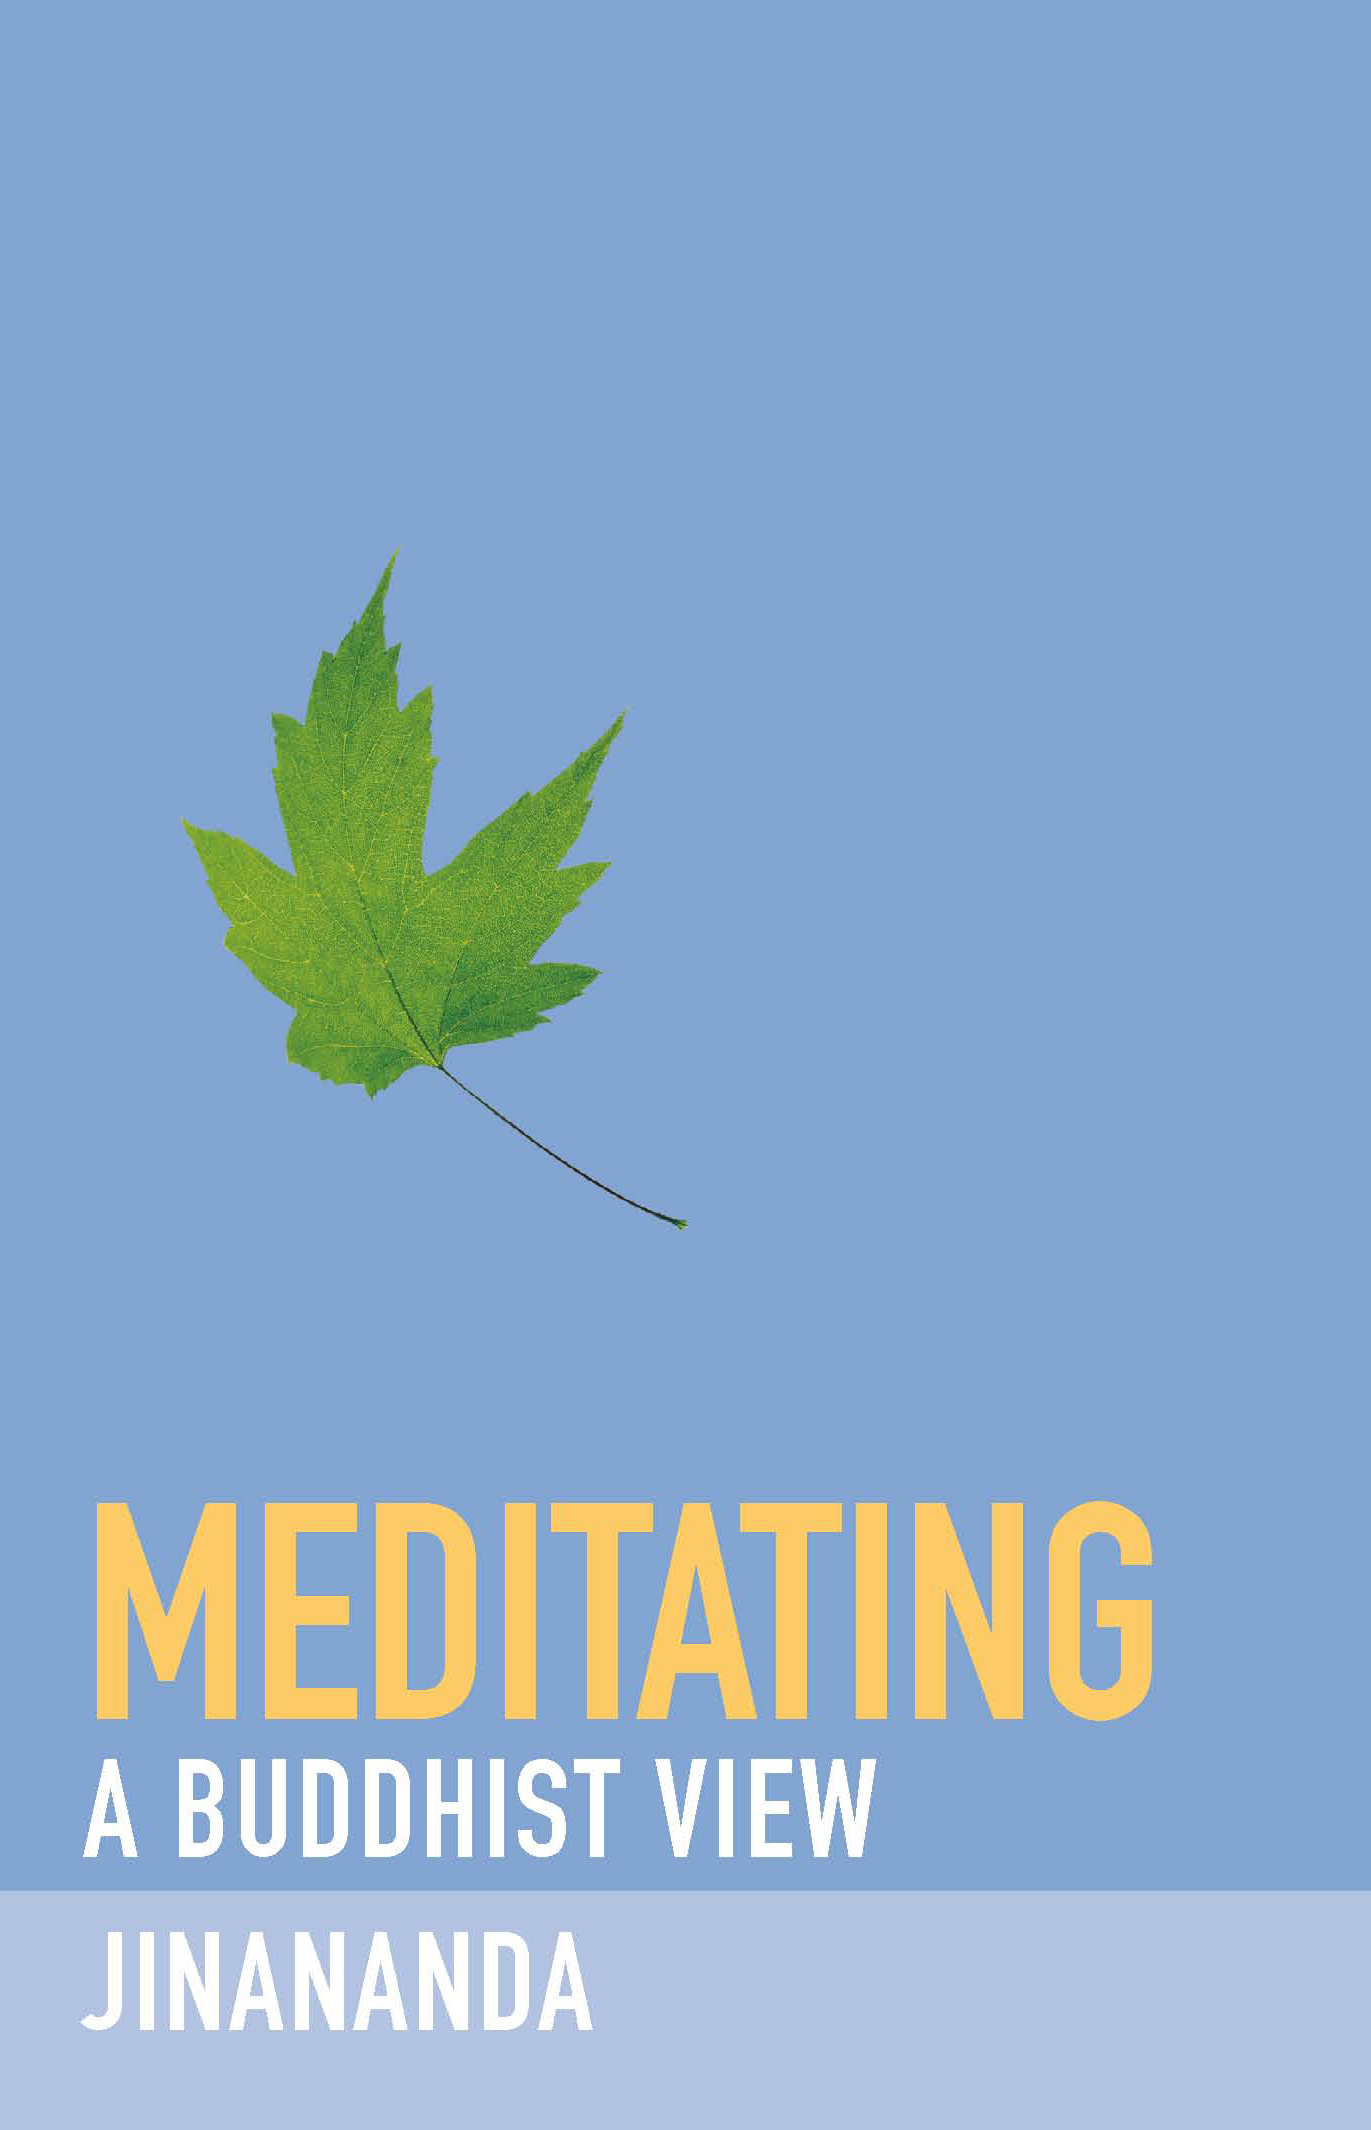 Meditation: the setting up of conditions for an ever more positive mental state to arise